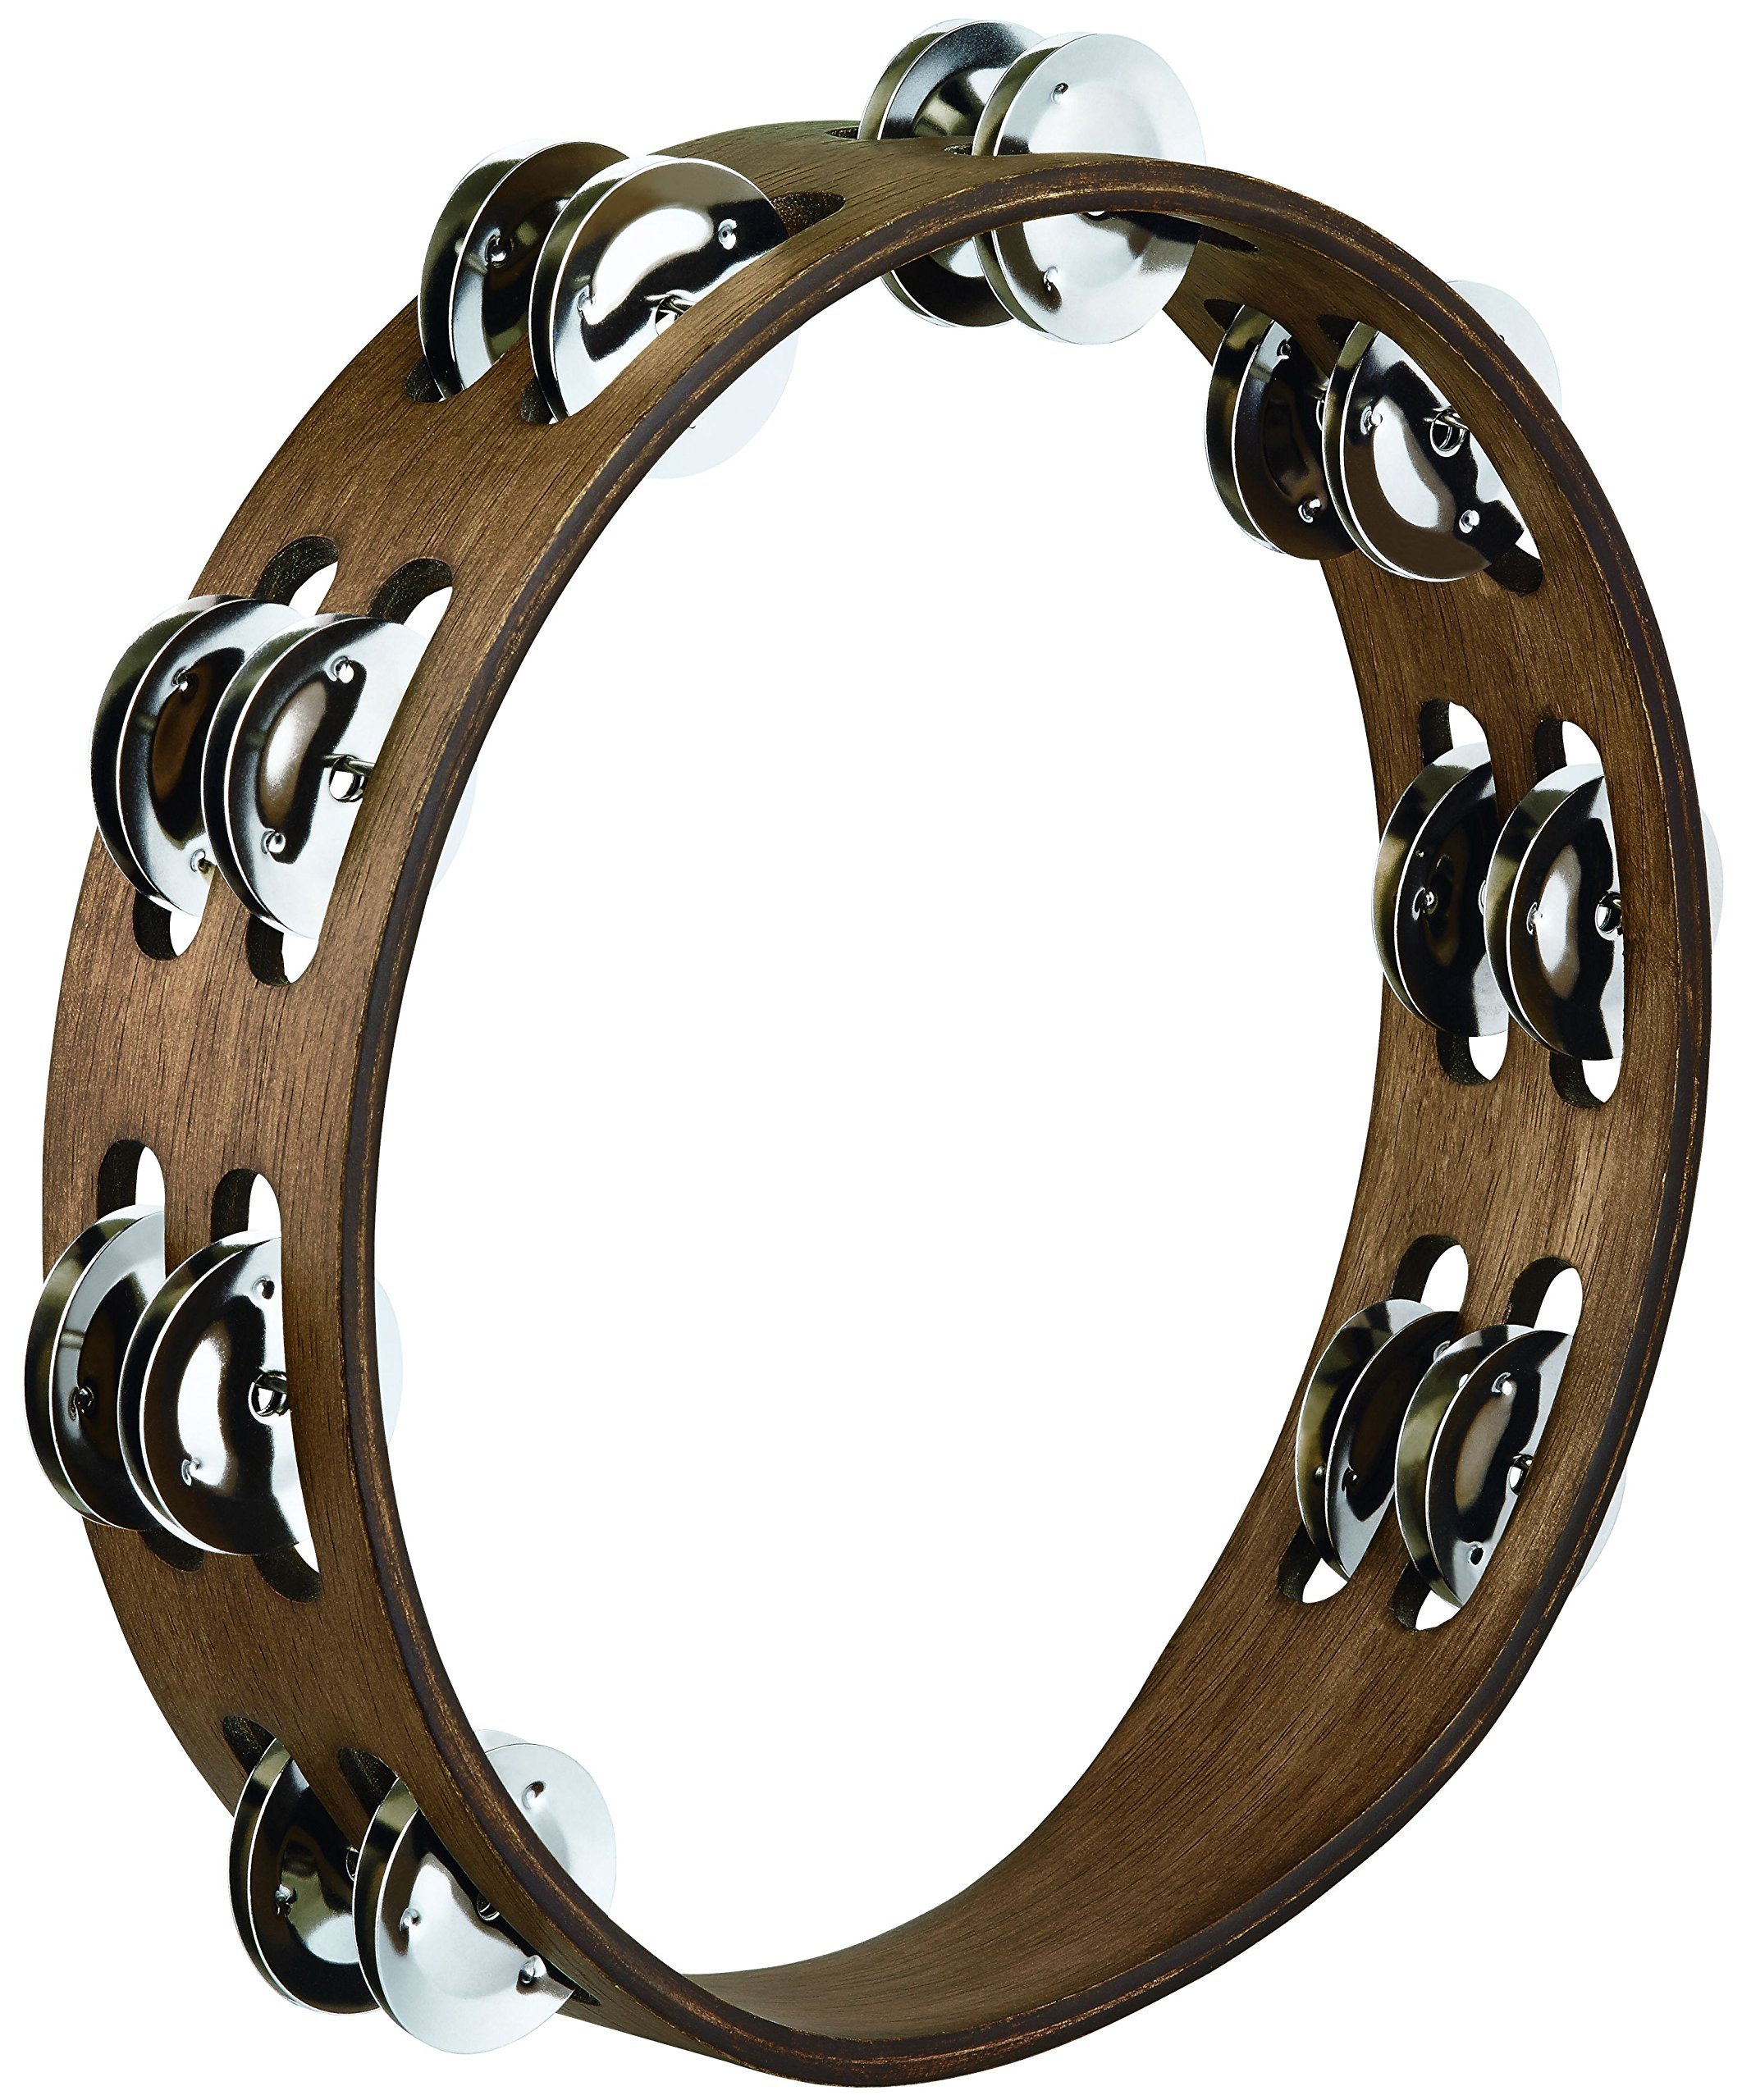 Meinl Percussion TA2WB 10-Inch Wood Tambourine with Double Row Stainless Steel Jingles, Walnut Brown Finish